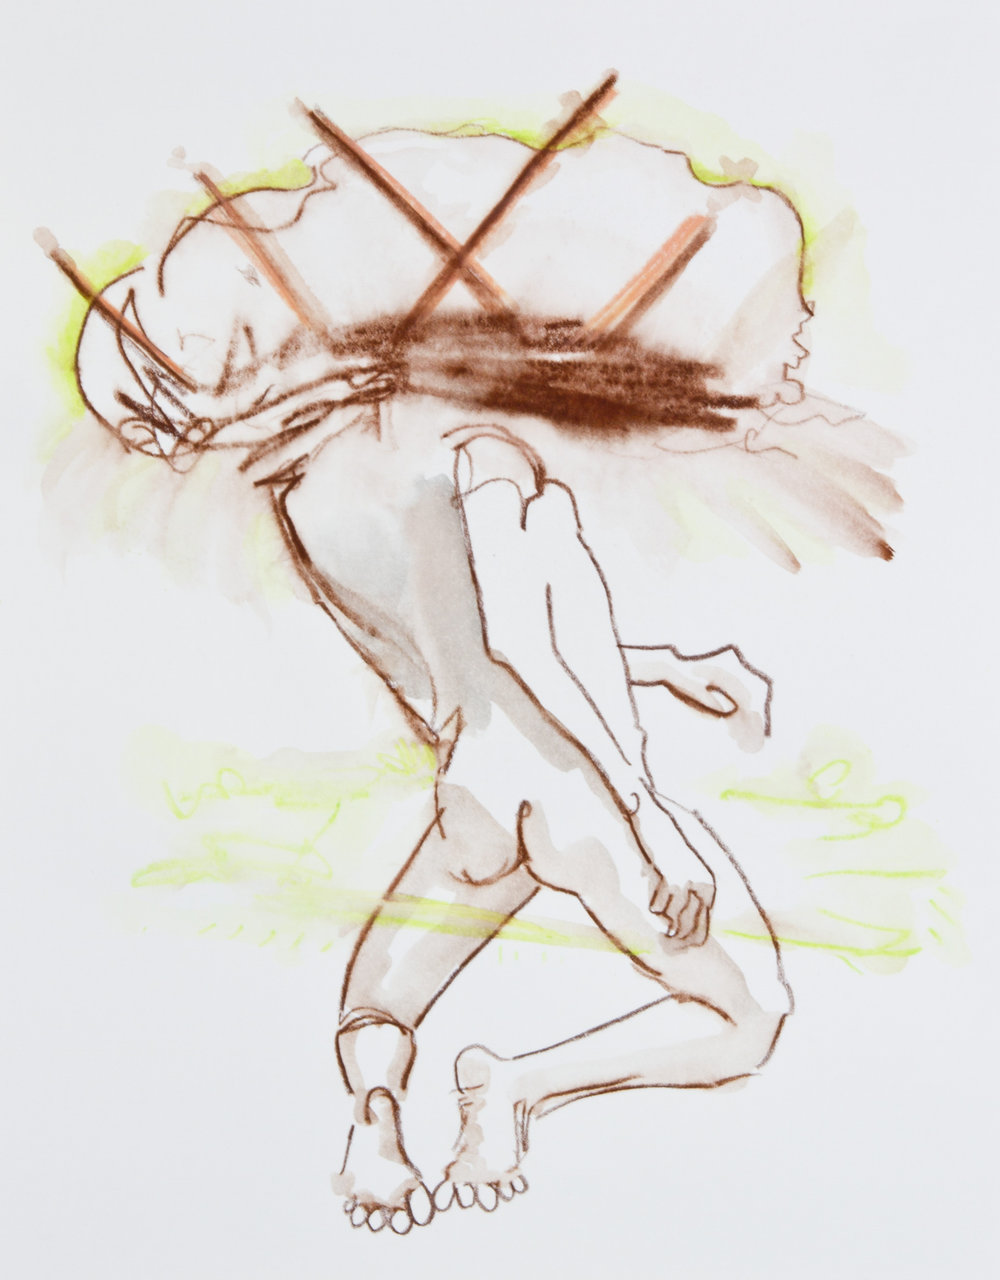 Brown Note, 2013, graphite, crayon and watercolor pencil on paper, 11x14 inches